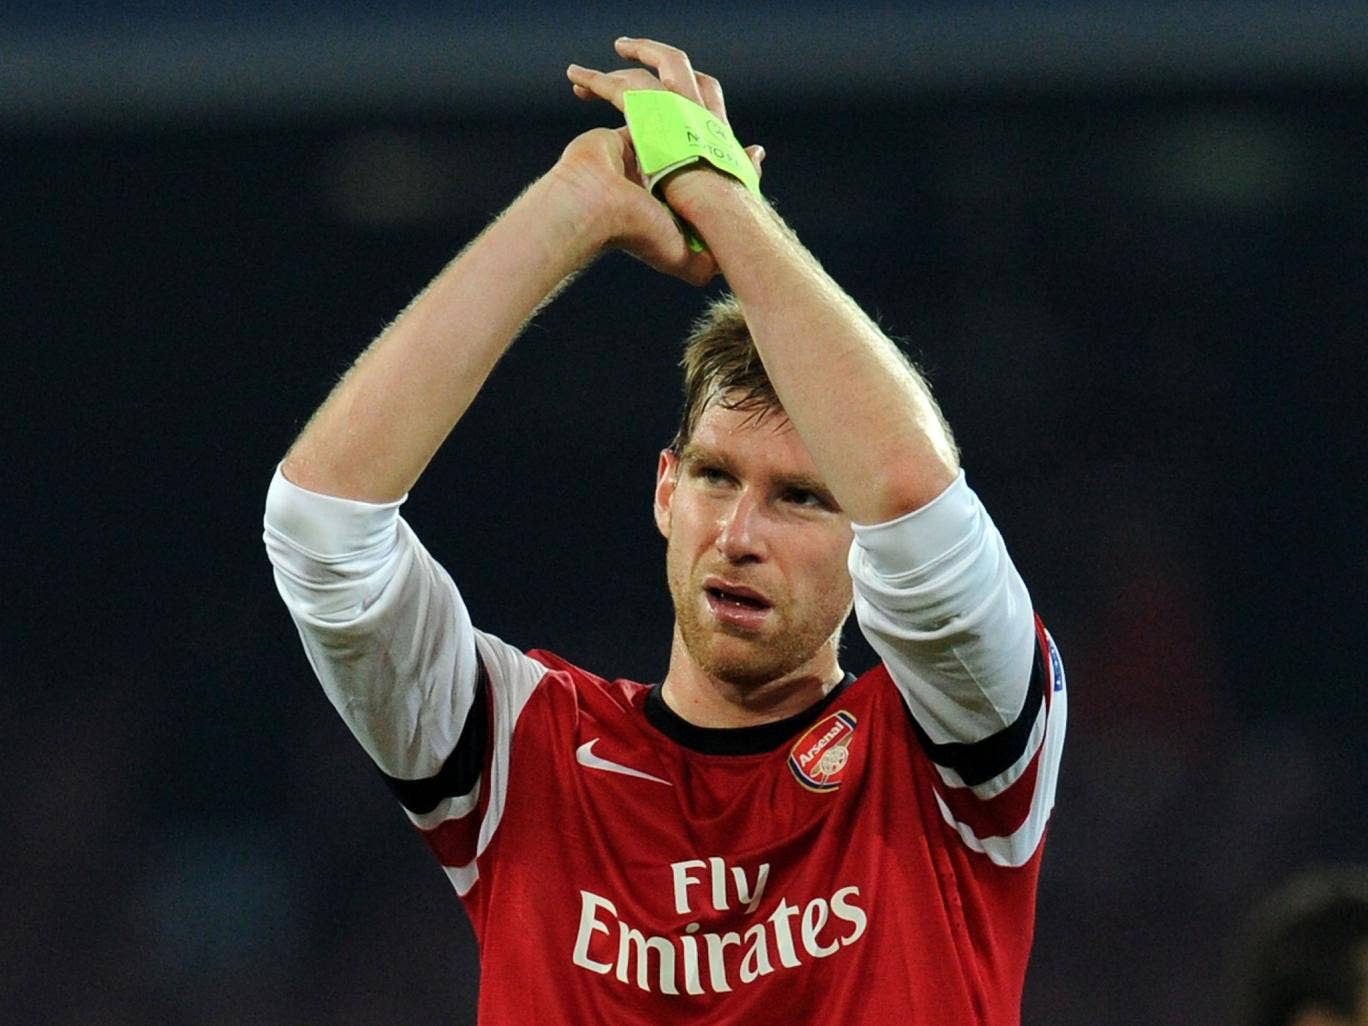 Arsenal defender Per Mertesacker believes Arsenal can compete with Europe's best ahead of the Champions League draw